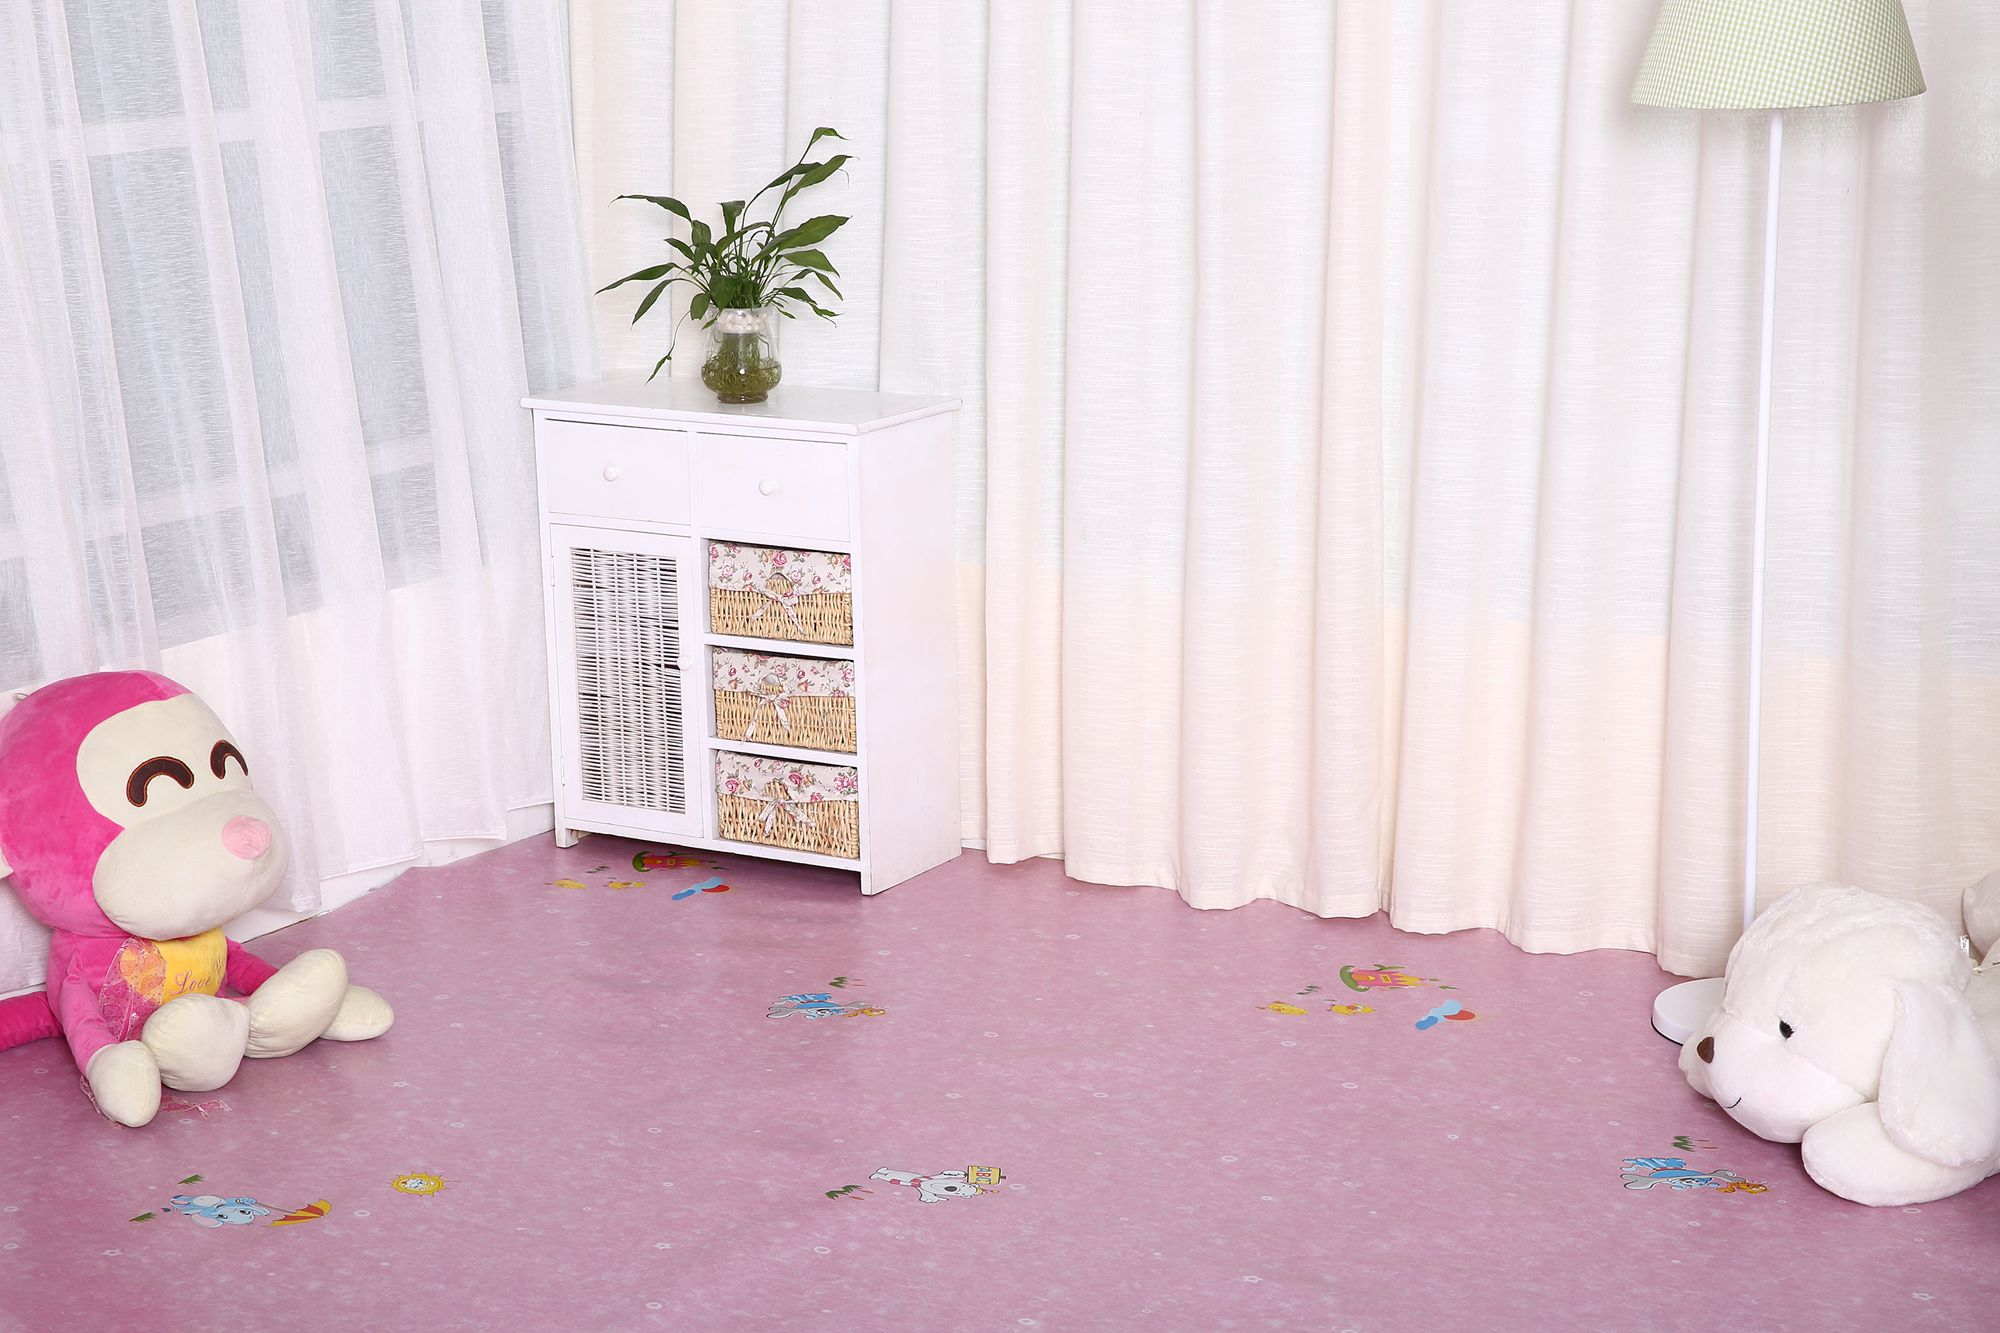 China made high quality plastic pvc vinyl flooring home decoration